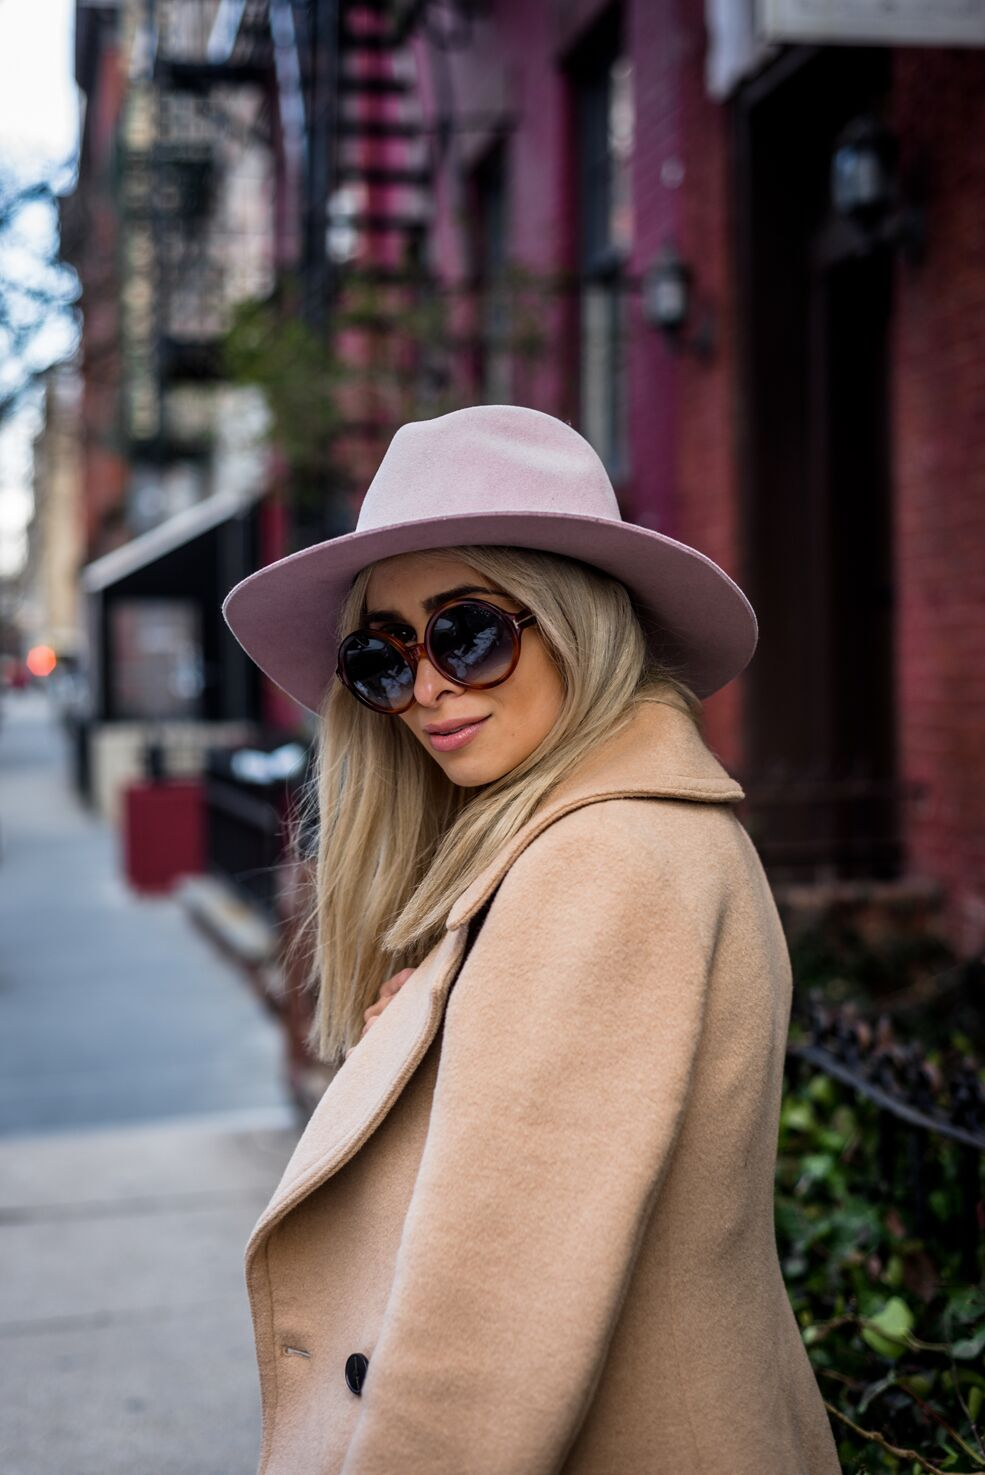 international womens day_womens march_womens march nyc_savvy javvy_nyc fashion blogger_nyc streetstyle_pink dress_blush dress_pink hat_camel coat_camel pea coat_tan slides_tan mules_west village